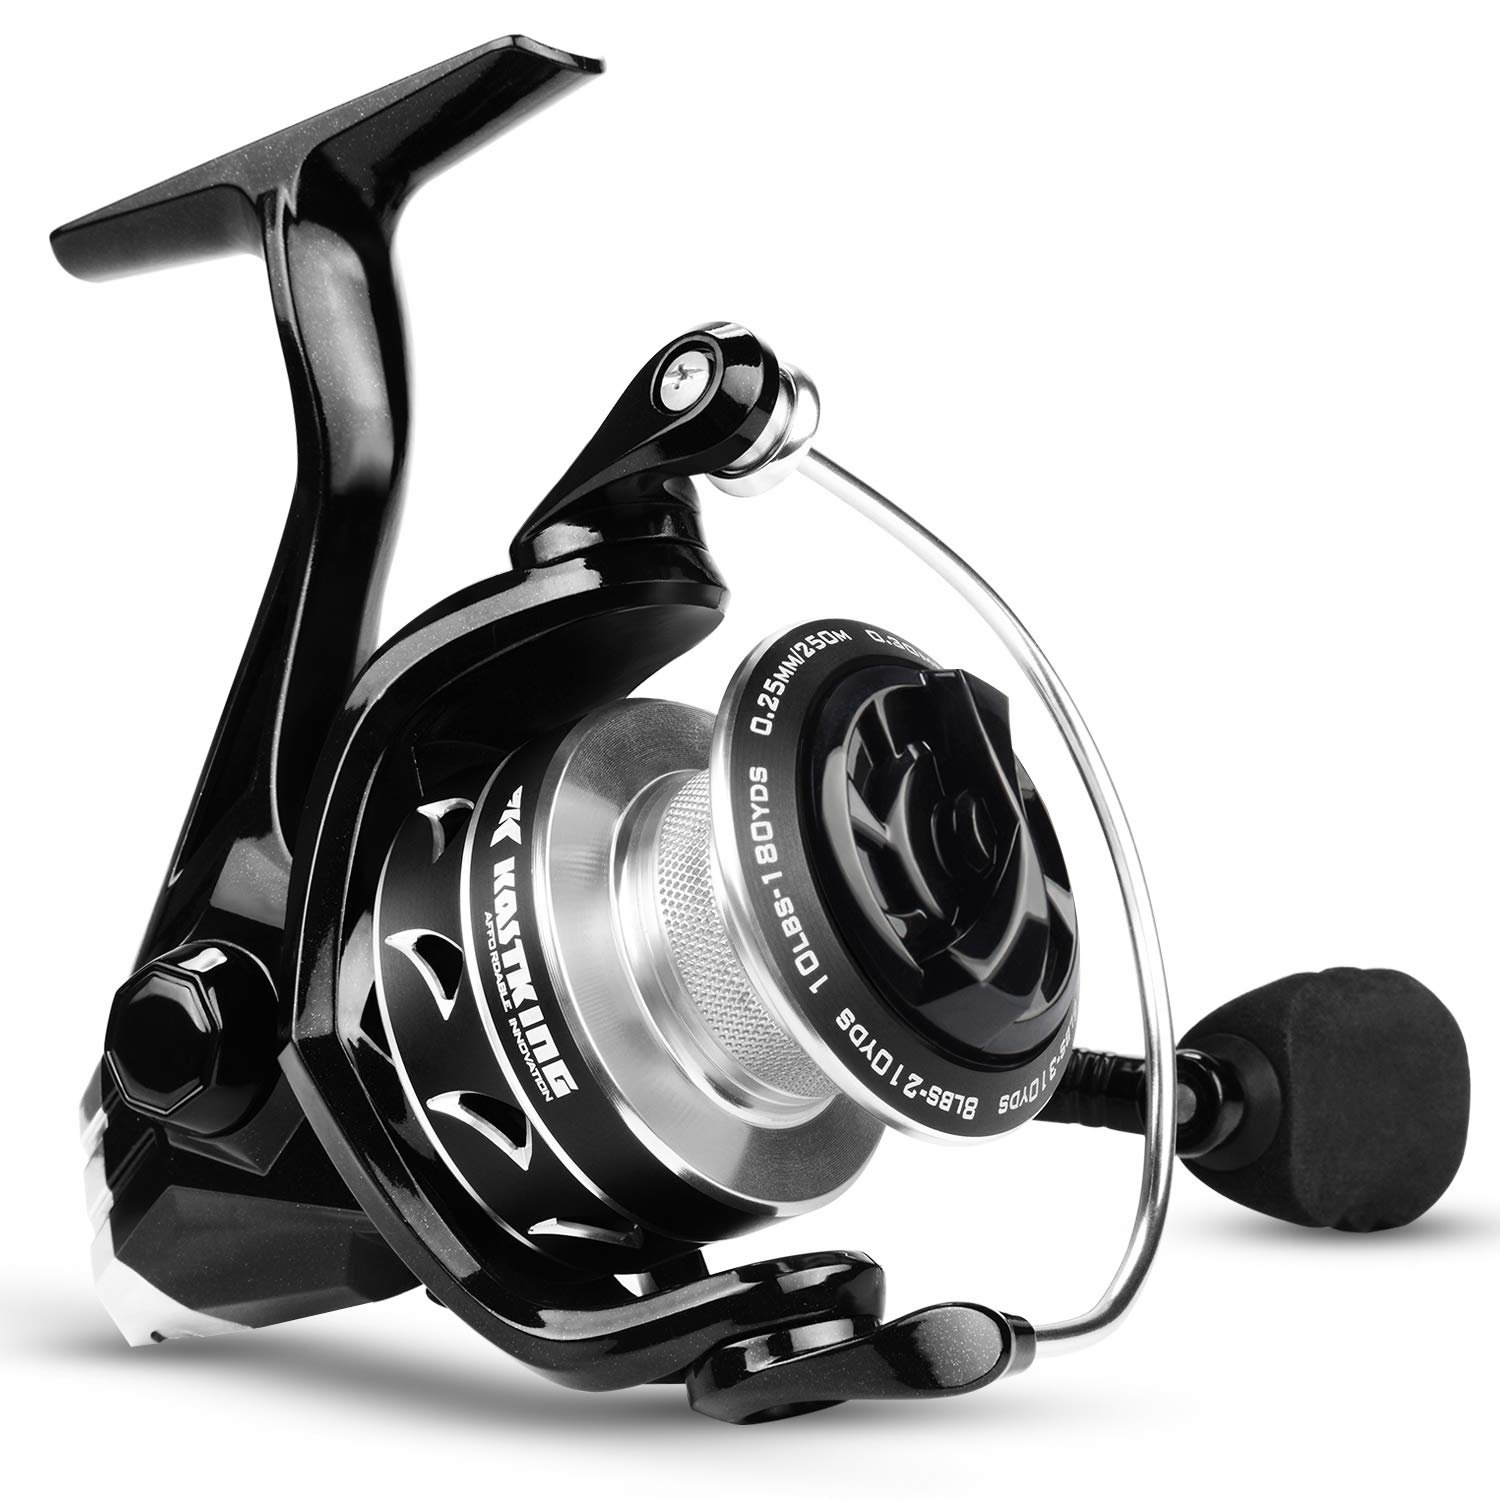 KastKing Valiant Eagle Series Spinning Reel – Bald Eagle Edition Fishing Reel, All Carbon Fiber Frame and Rotor, Never-Rust 1-Piece Bail, 6.2 1 High Speed Gear Ratio, Freshwater and Saltwater.